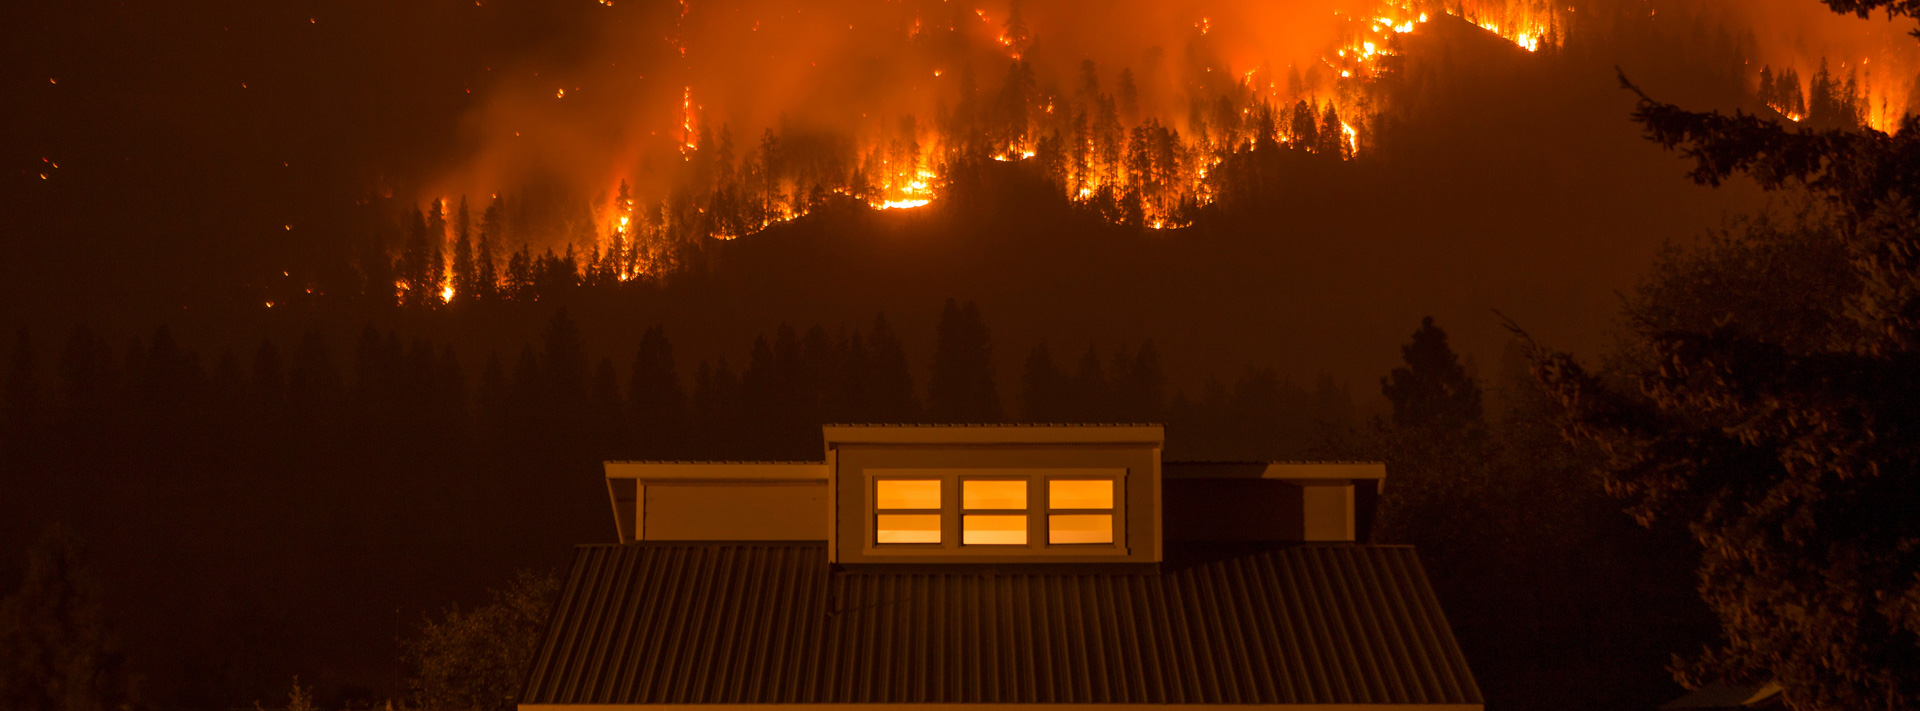 Forest fire behind a house